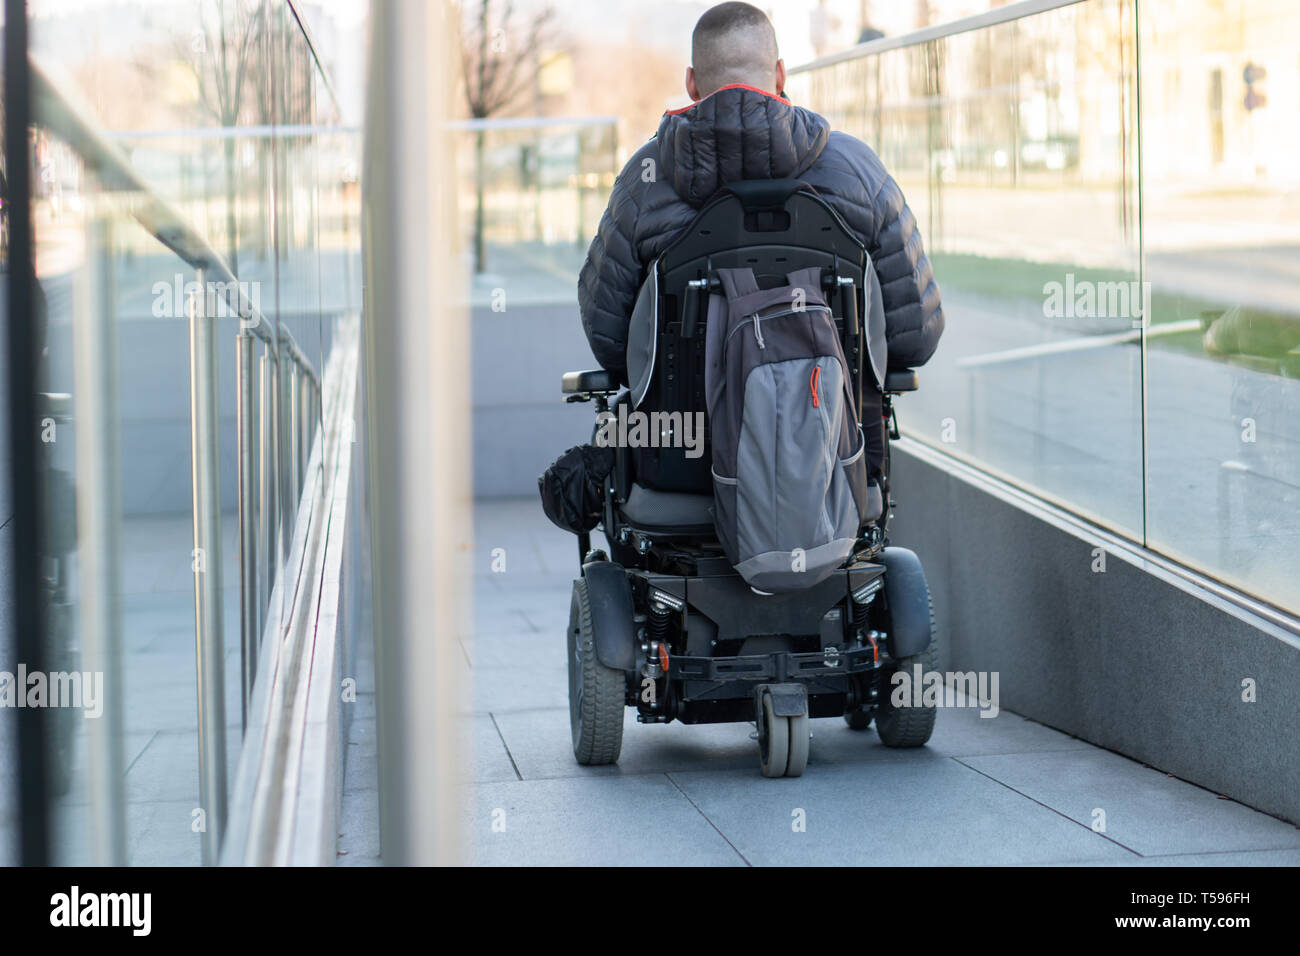 Sedia Elettrica Invenzione Disabled Man In Electric Wheelchair Immagini Disabled Man In